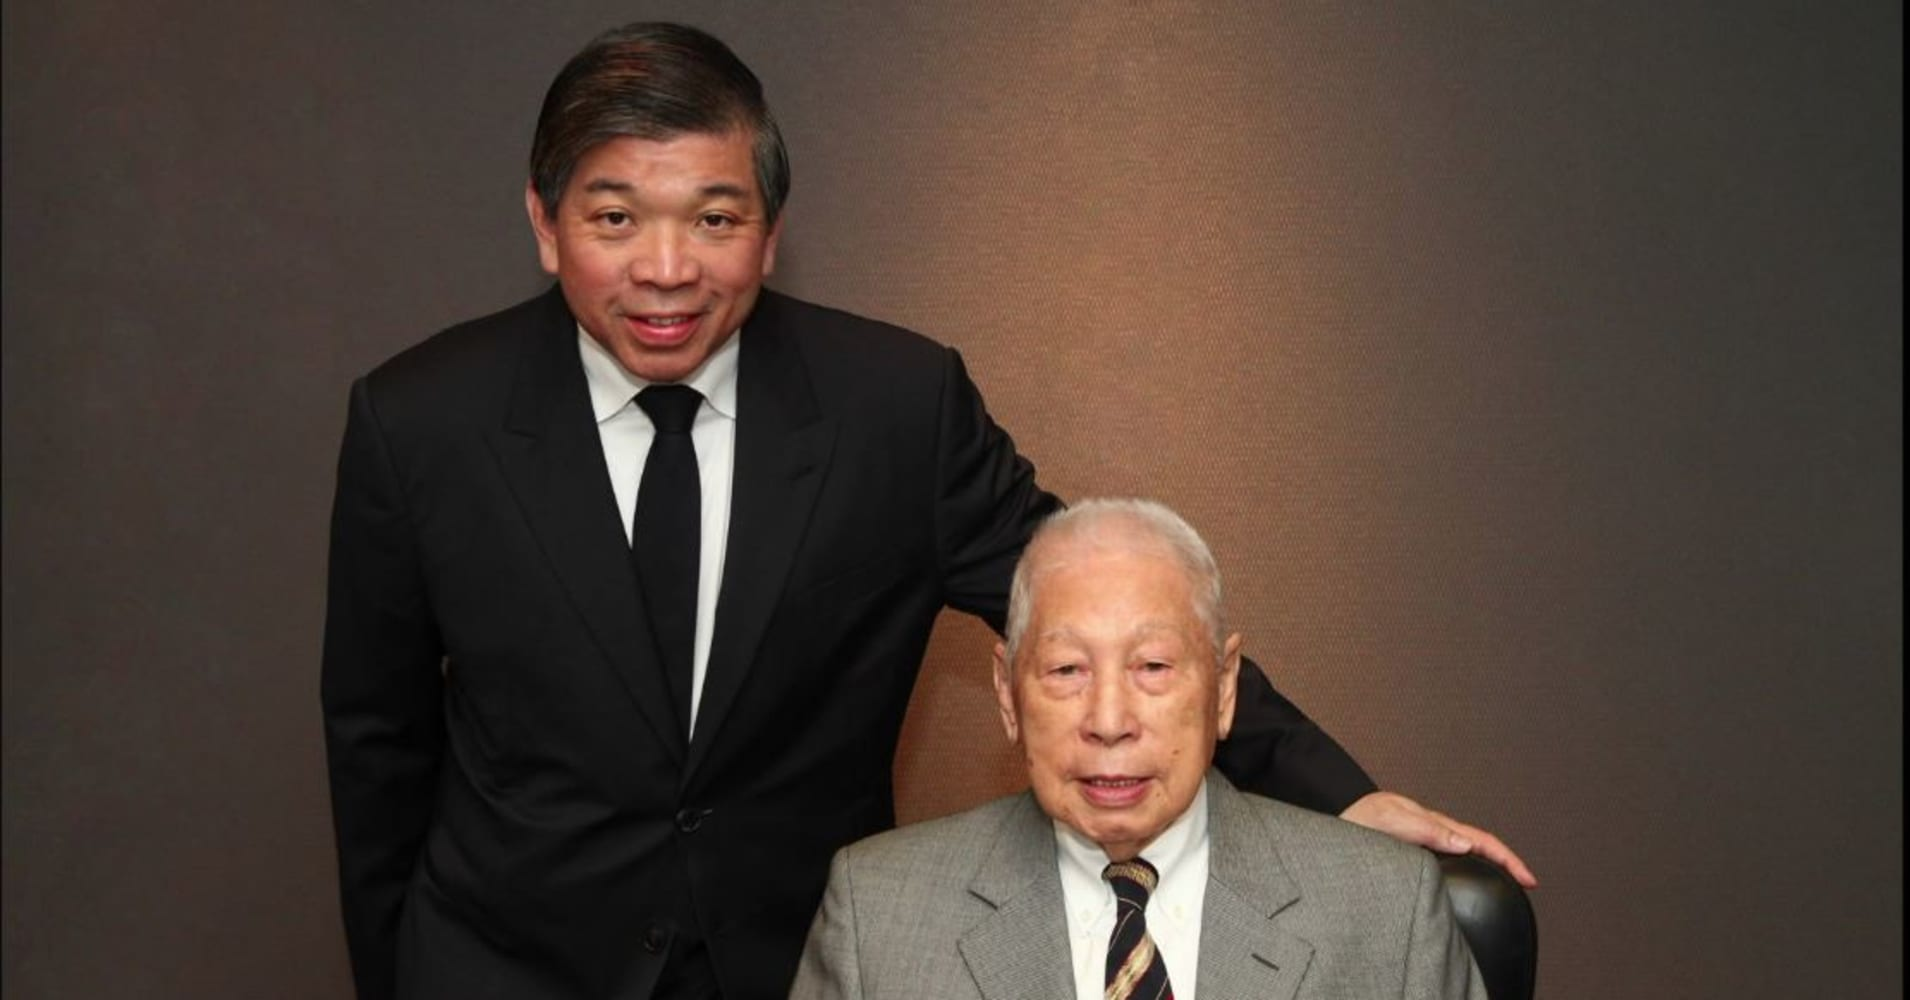 At 100 years old, the world's oldest billionaire still goes to the office every day